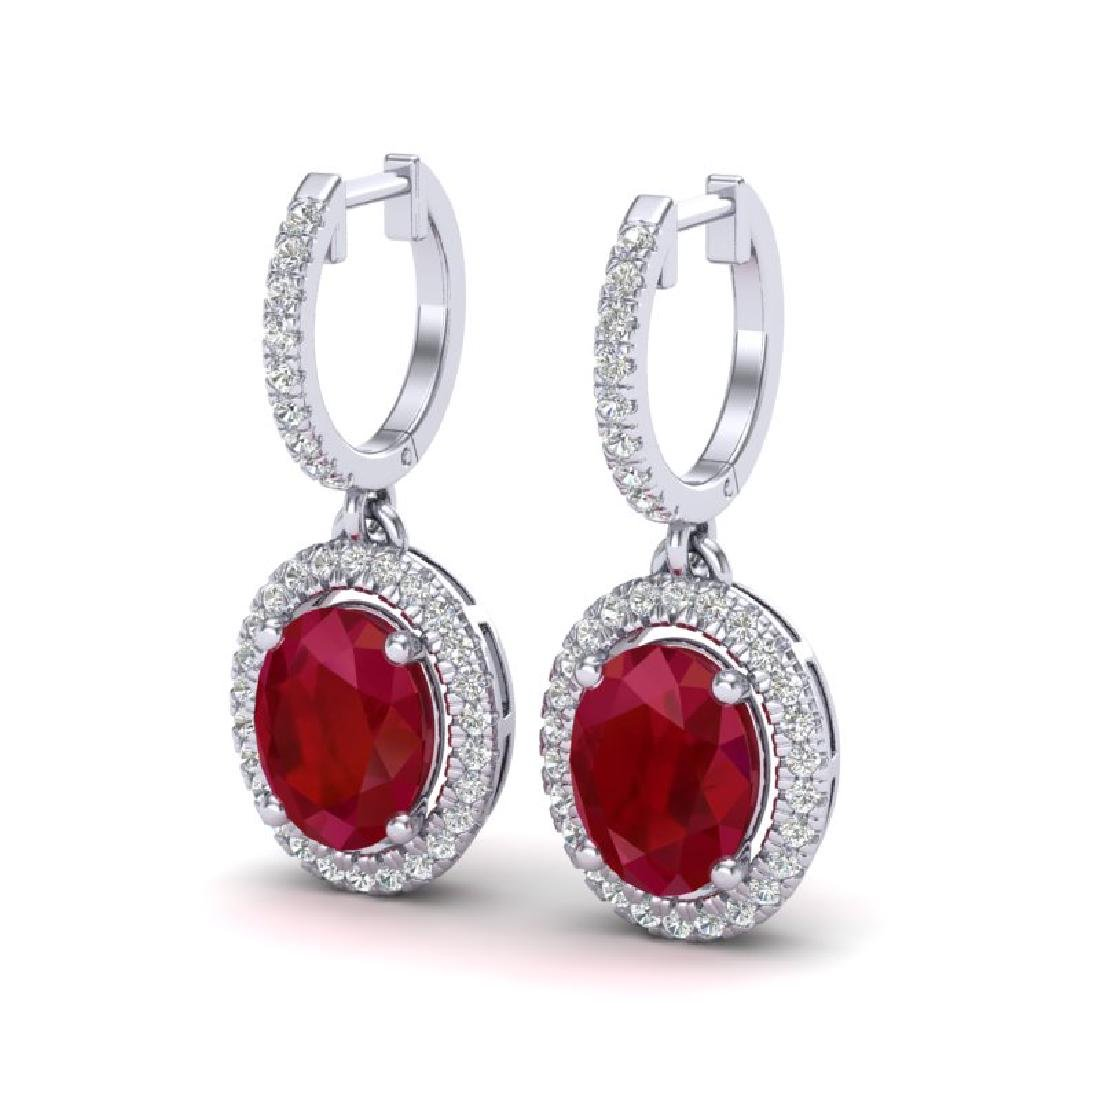 4.25 CTW Ruby & Micro Pave VS/SI Diamond Earrings